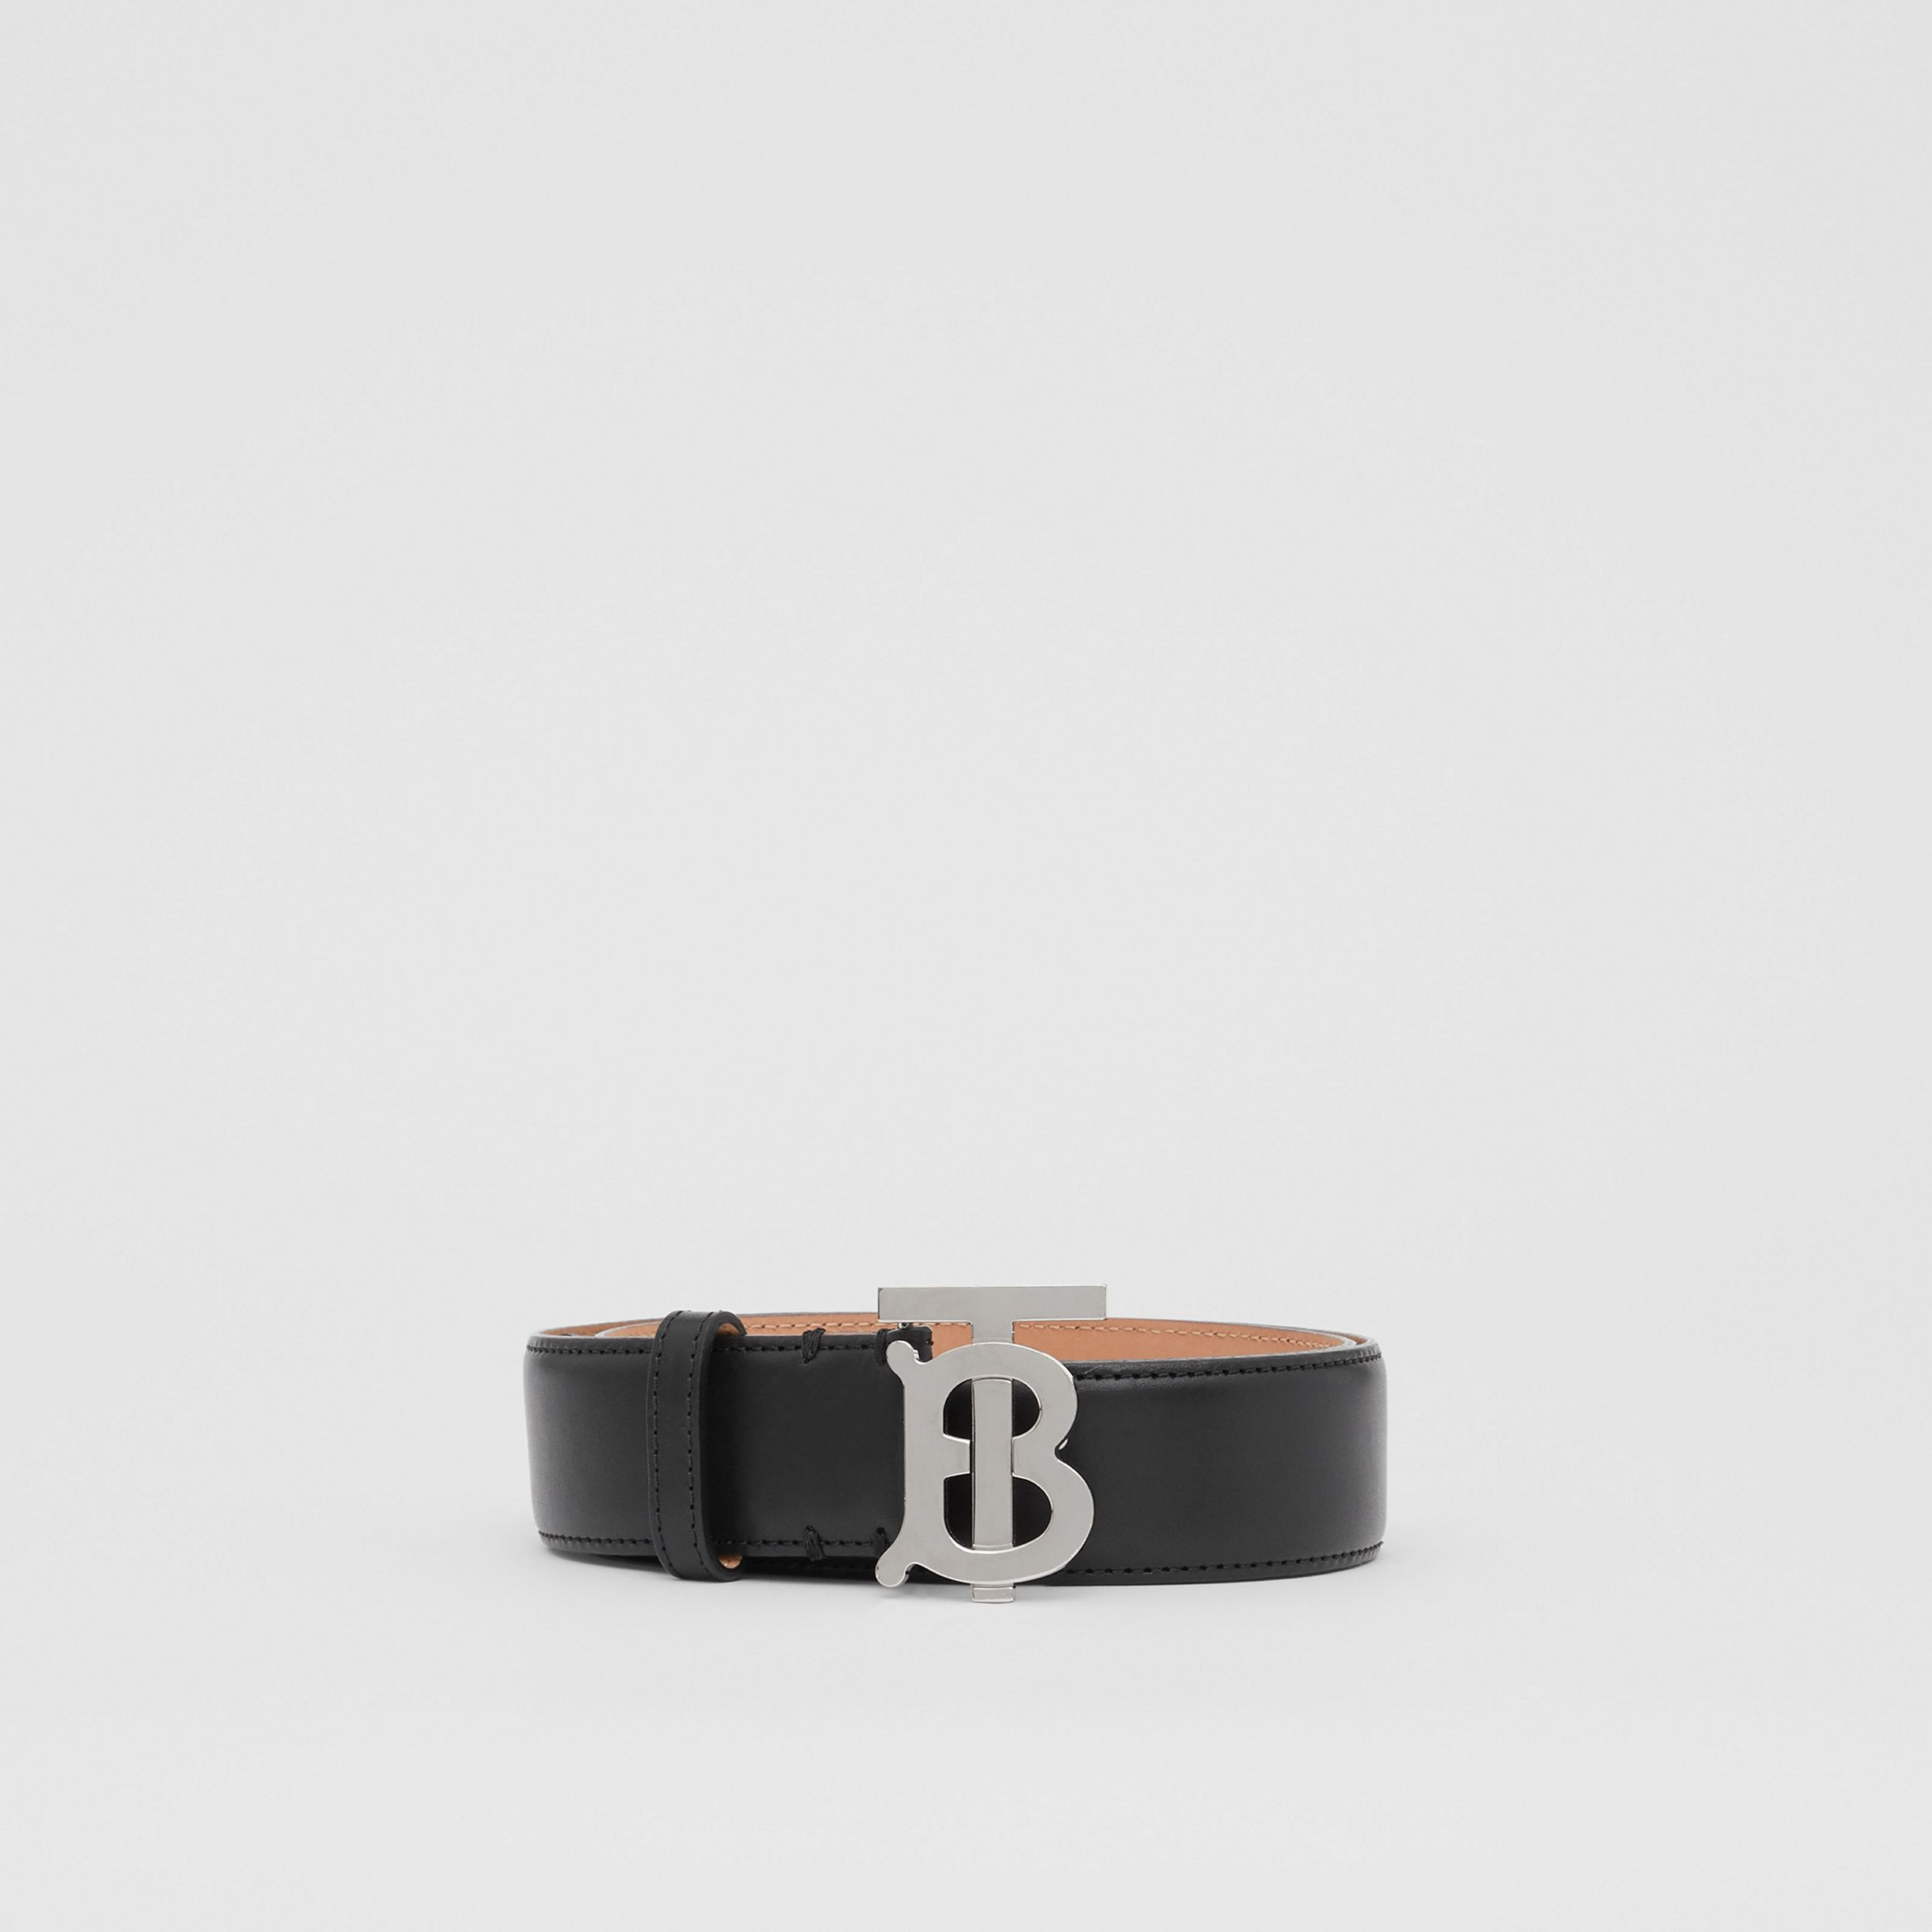 Monogram Motif Leather Belt in Black/palladio - Women | Burberry - 4